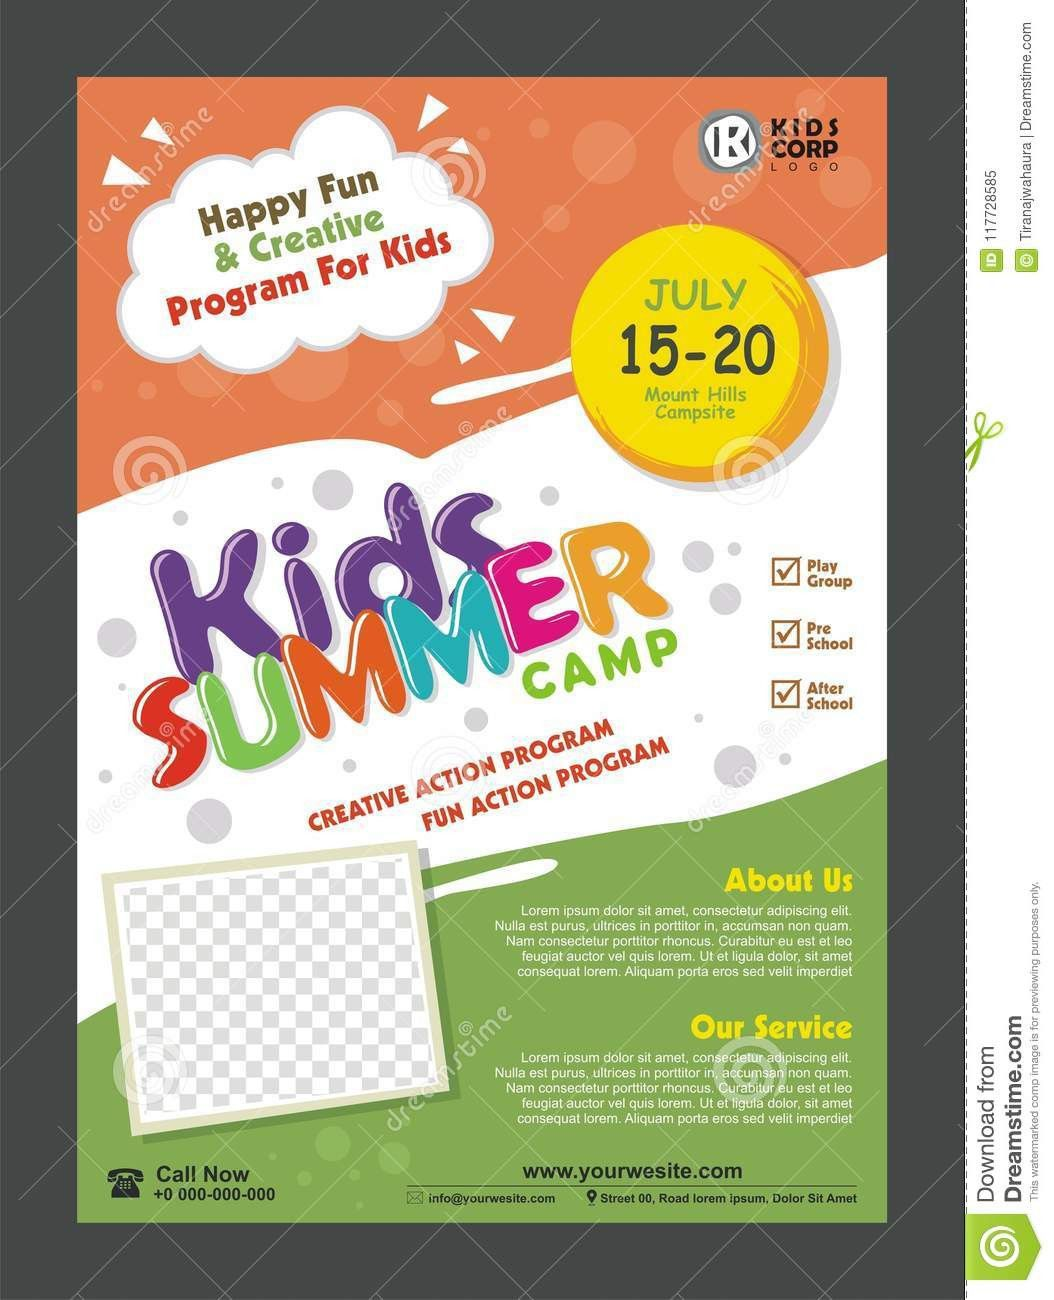 003 Surprising Free After School Flyer Template Picture  TemplatesFull